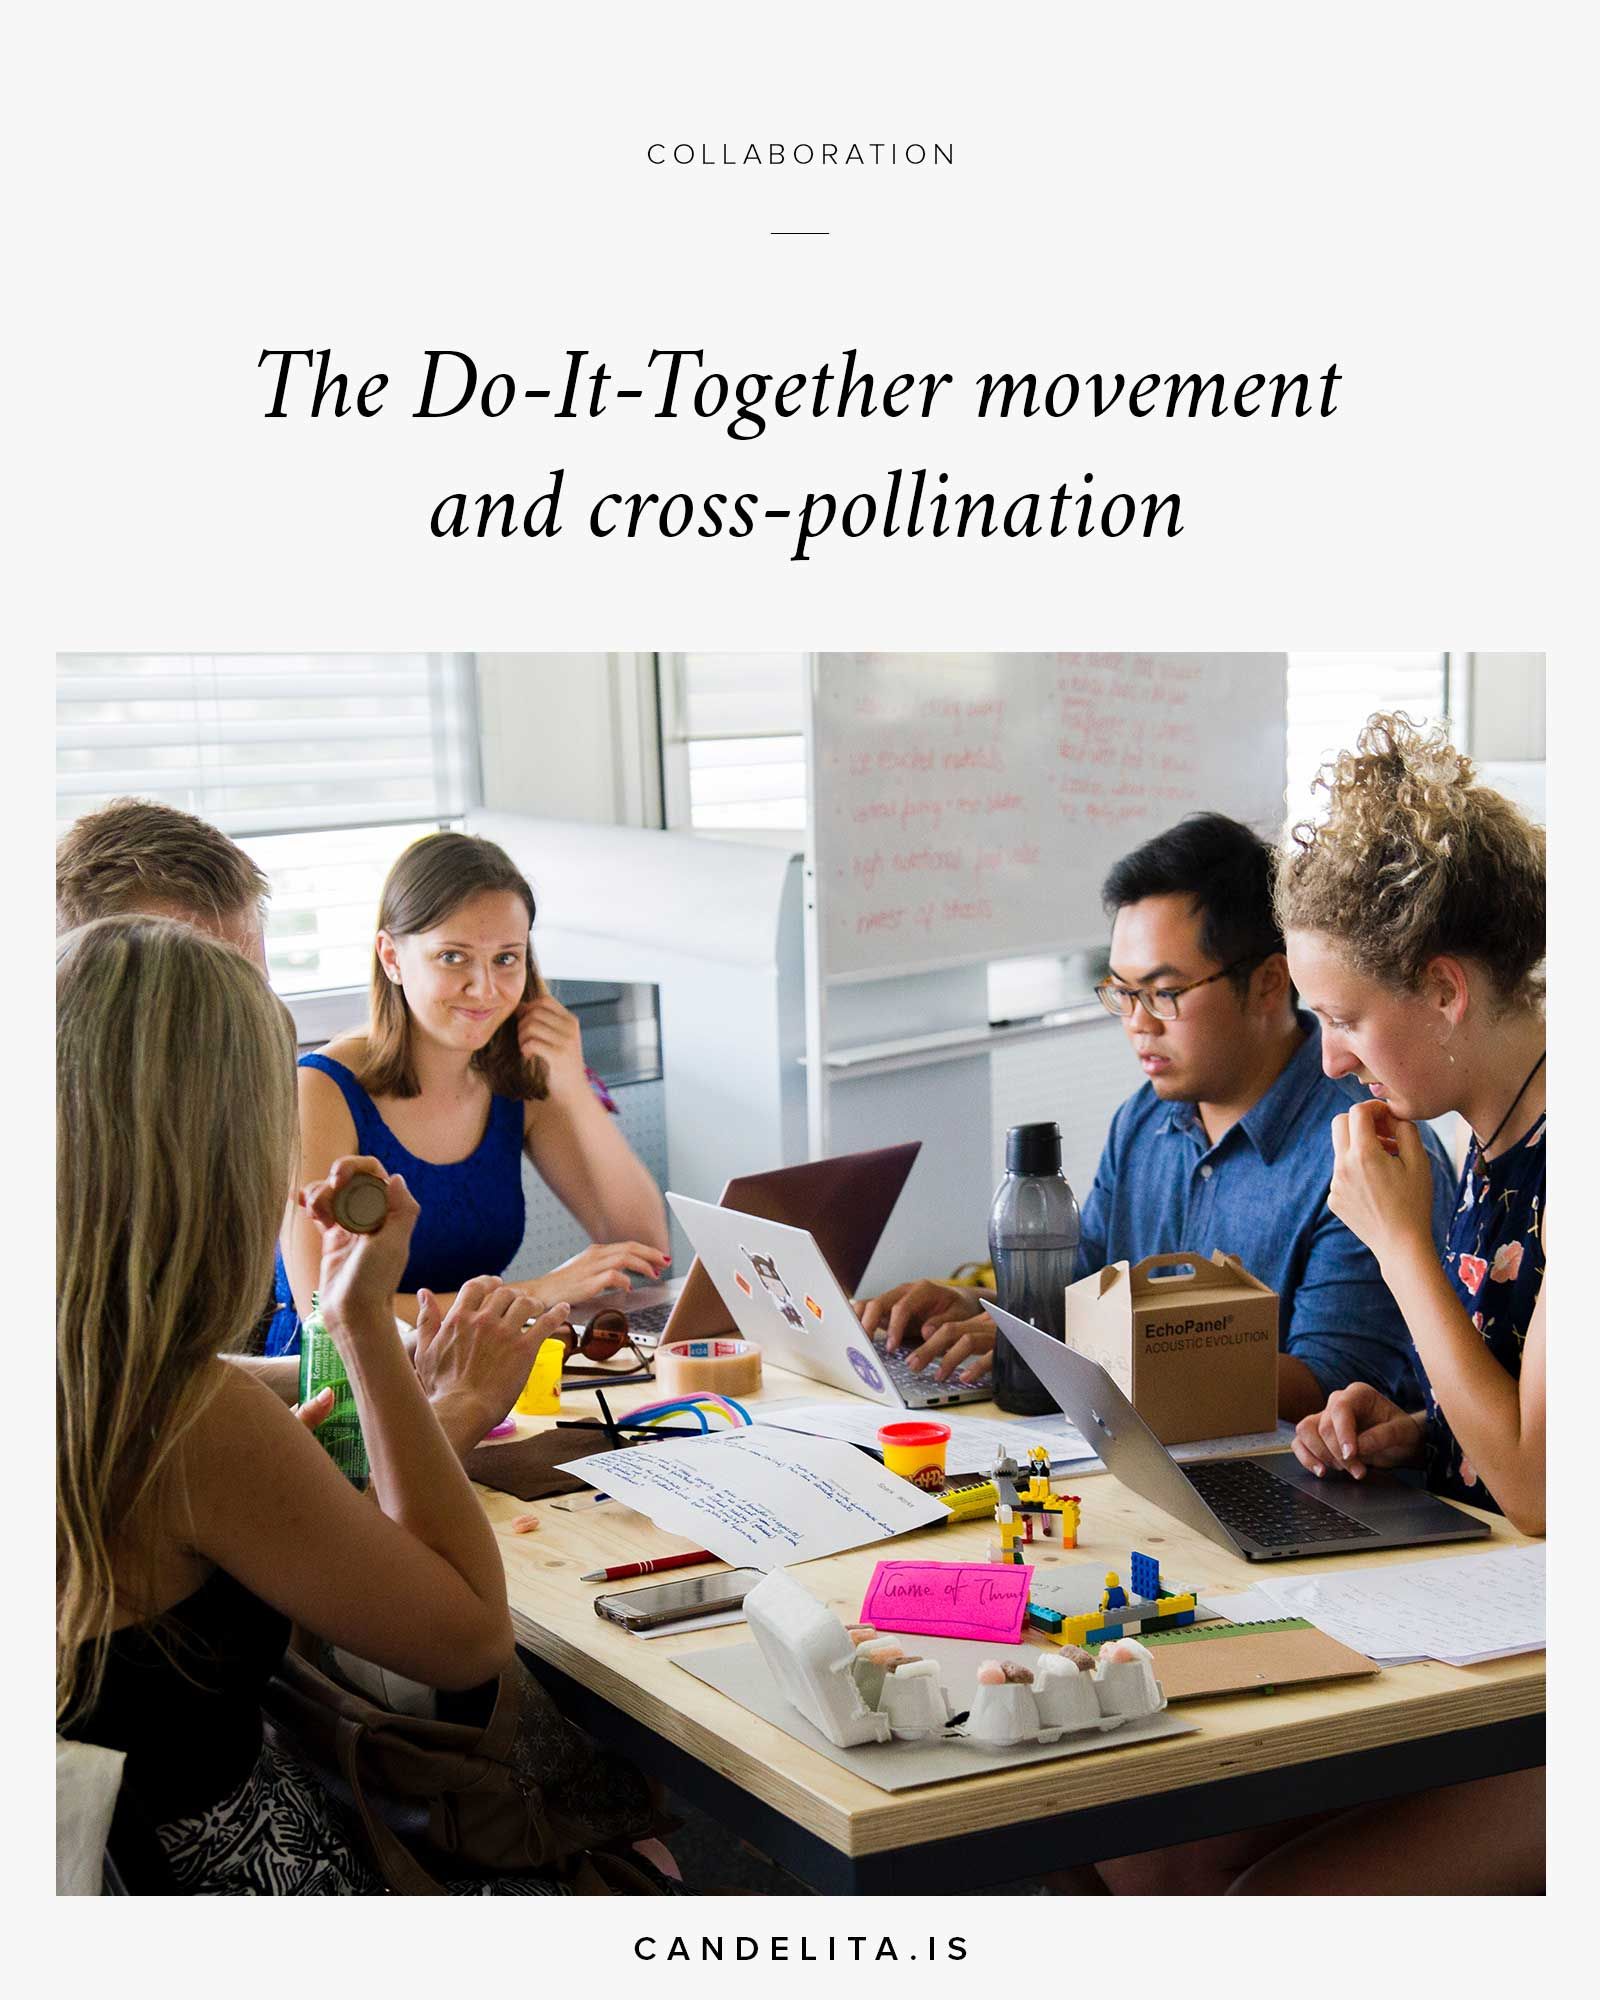 The Do-It-Together movement and cross-pollination